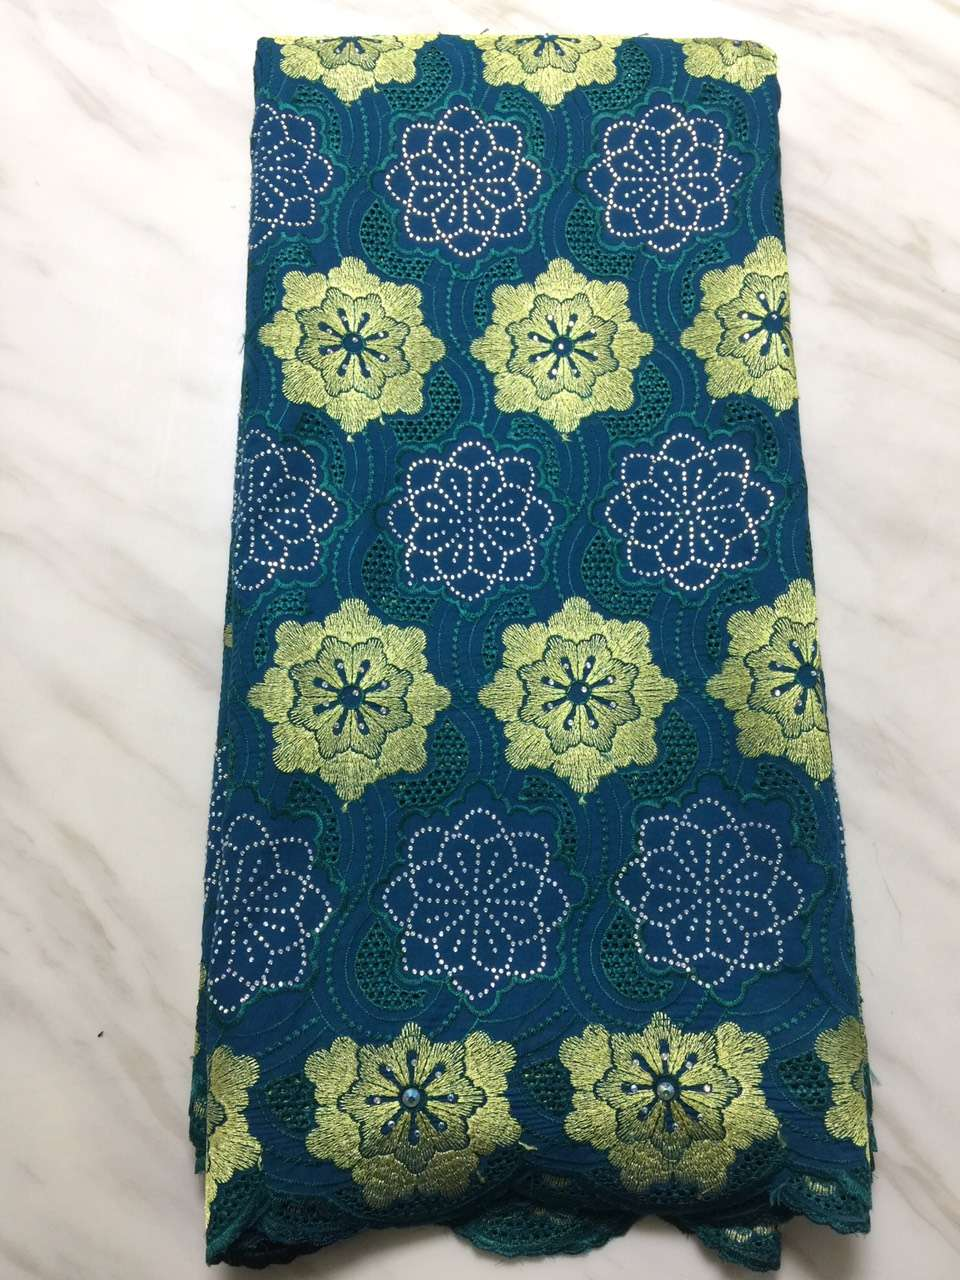 High Quality 2018 Swiss Voile Lace In Switzerland Cotton Swiss Voile Laces For African Lace Fabric For Women Dress (16L-12-18High Quality 2018 Swiss Voile Lace In Switzerland Cotton Swiss Voile Laces For African Lace Fabric For Women Dress (16L-12-18